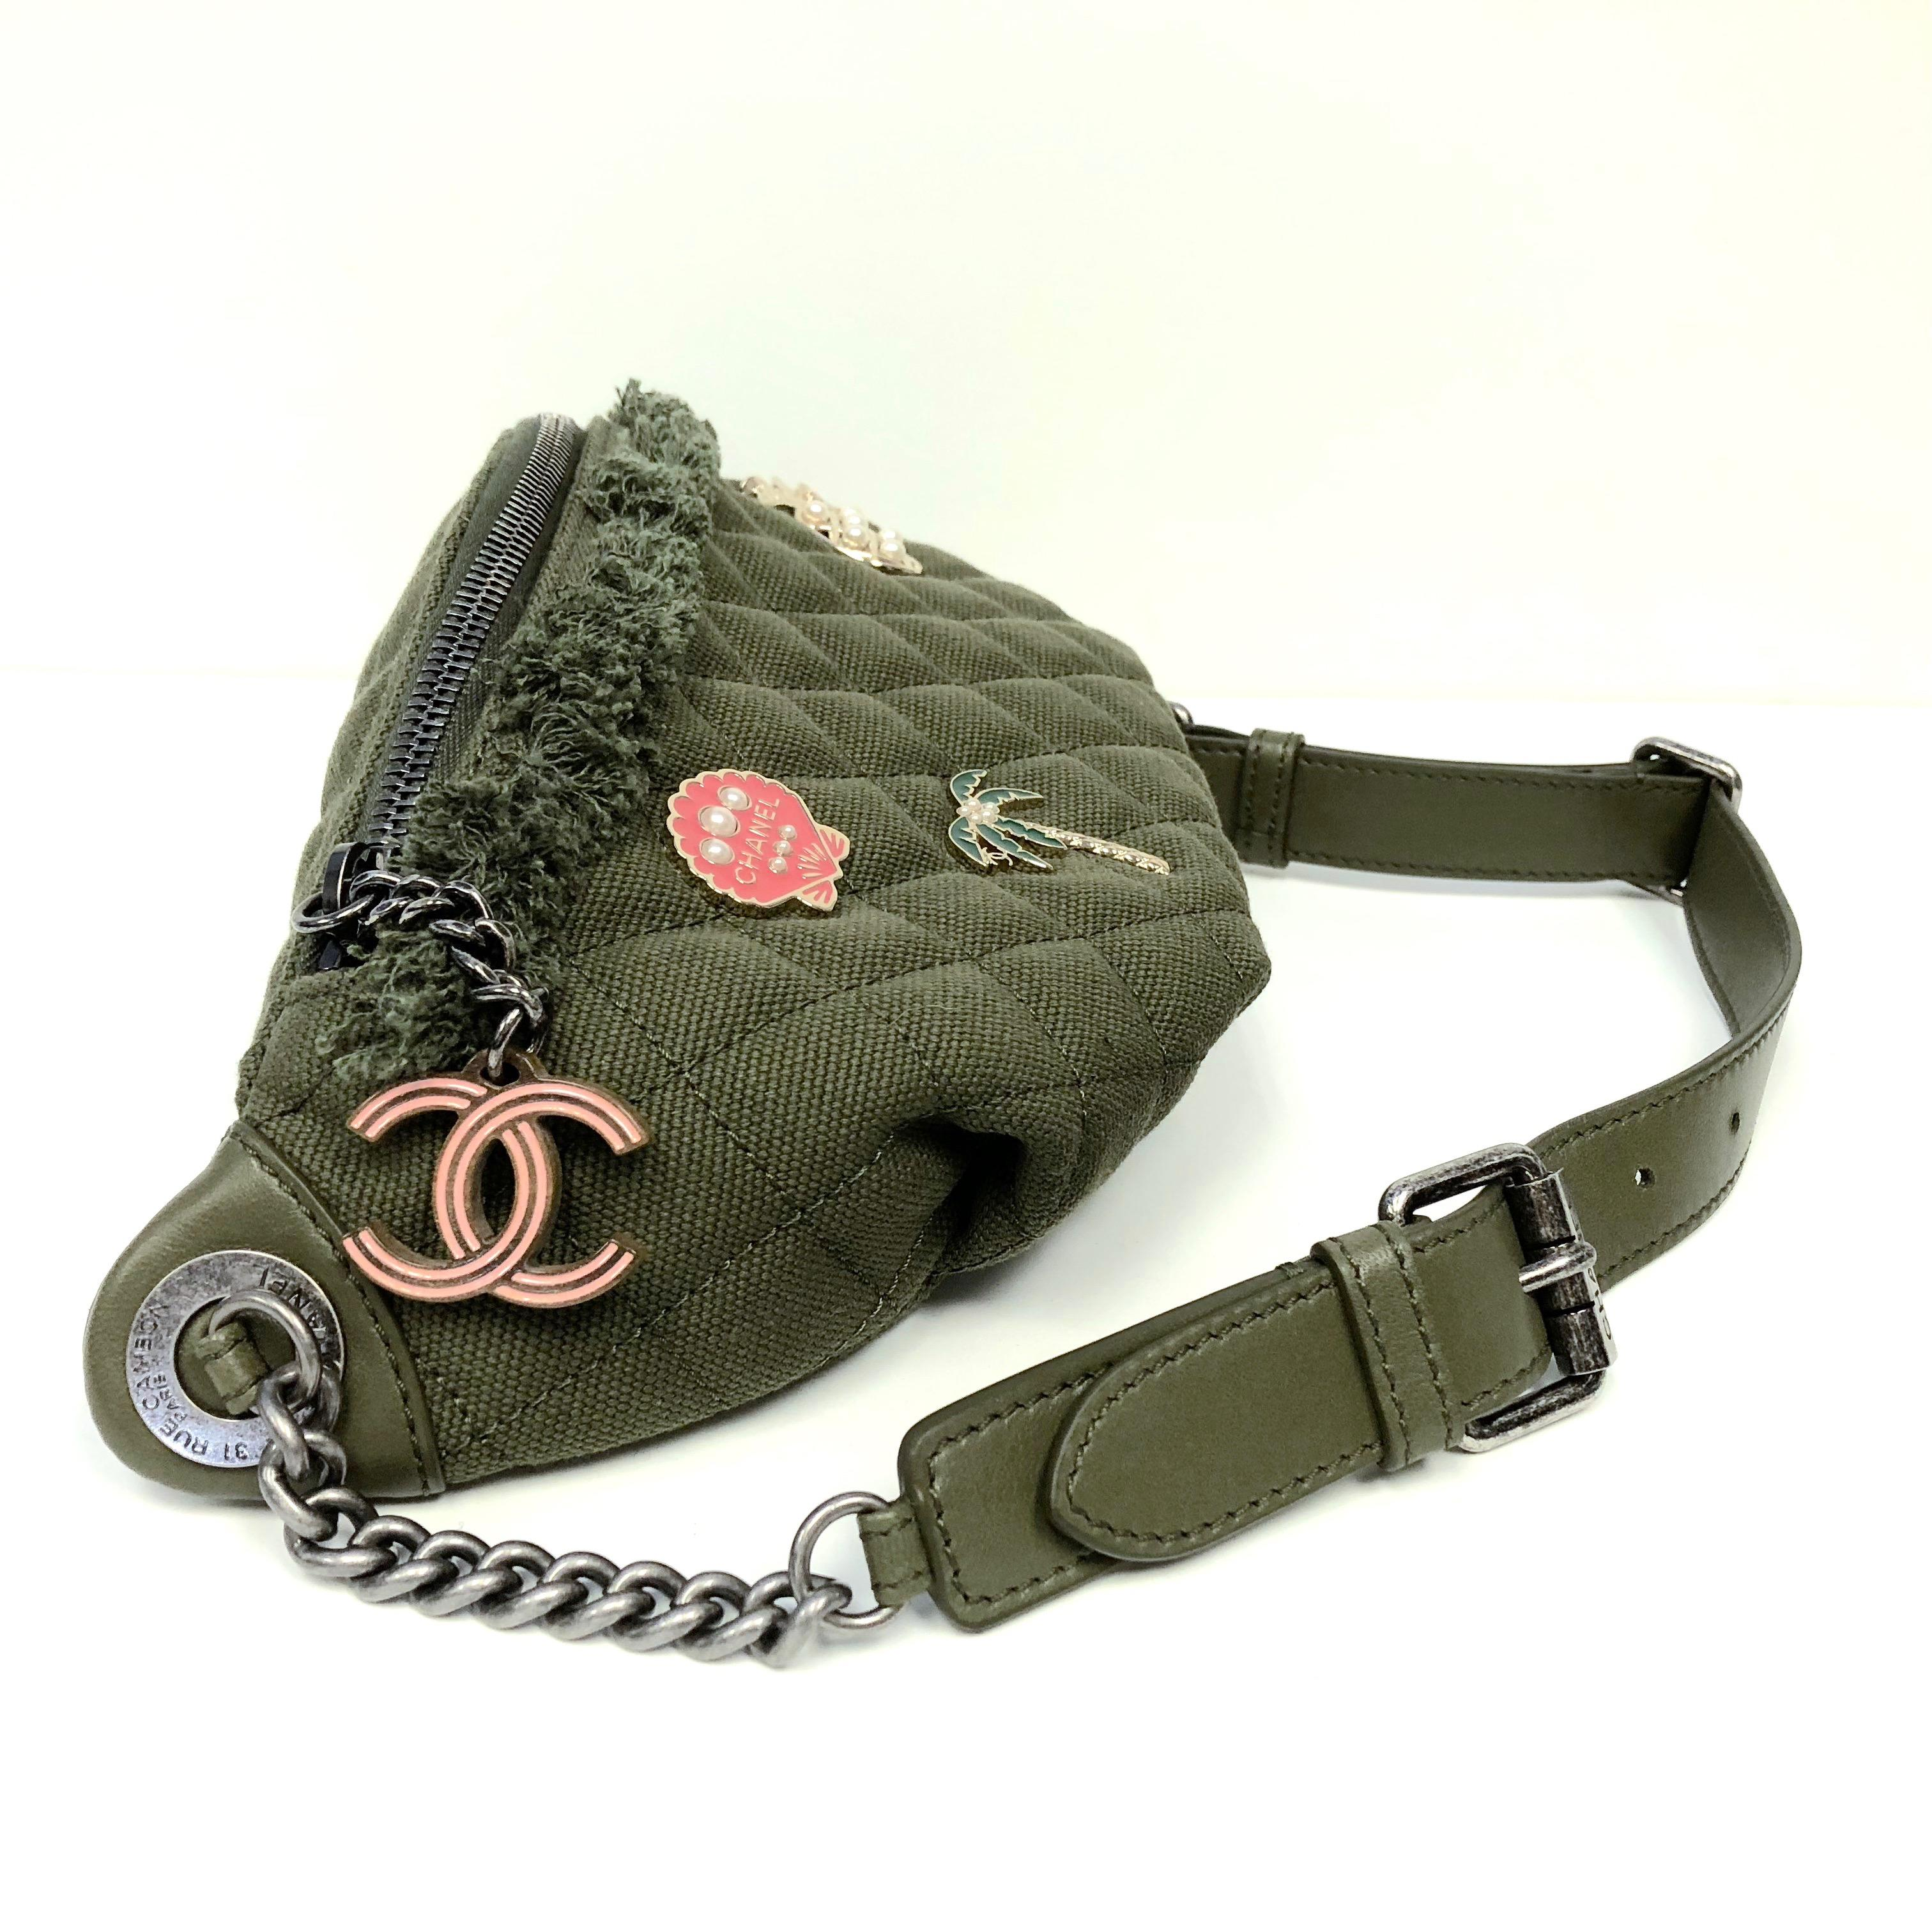 40c4dbf3424c12 CHANEL Cruise 2017 Quilted Coco Cuba Charms Khaki Waist Bag Fanny Pack at  1stdibs